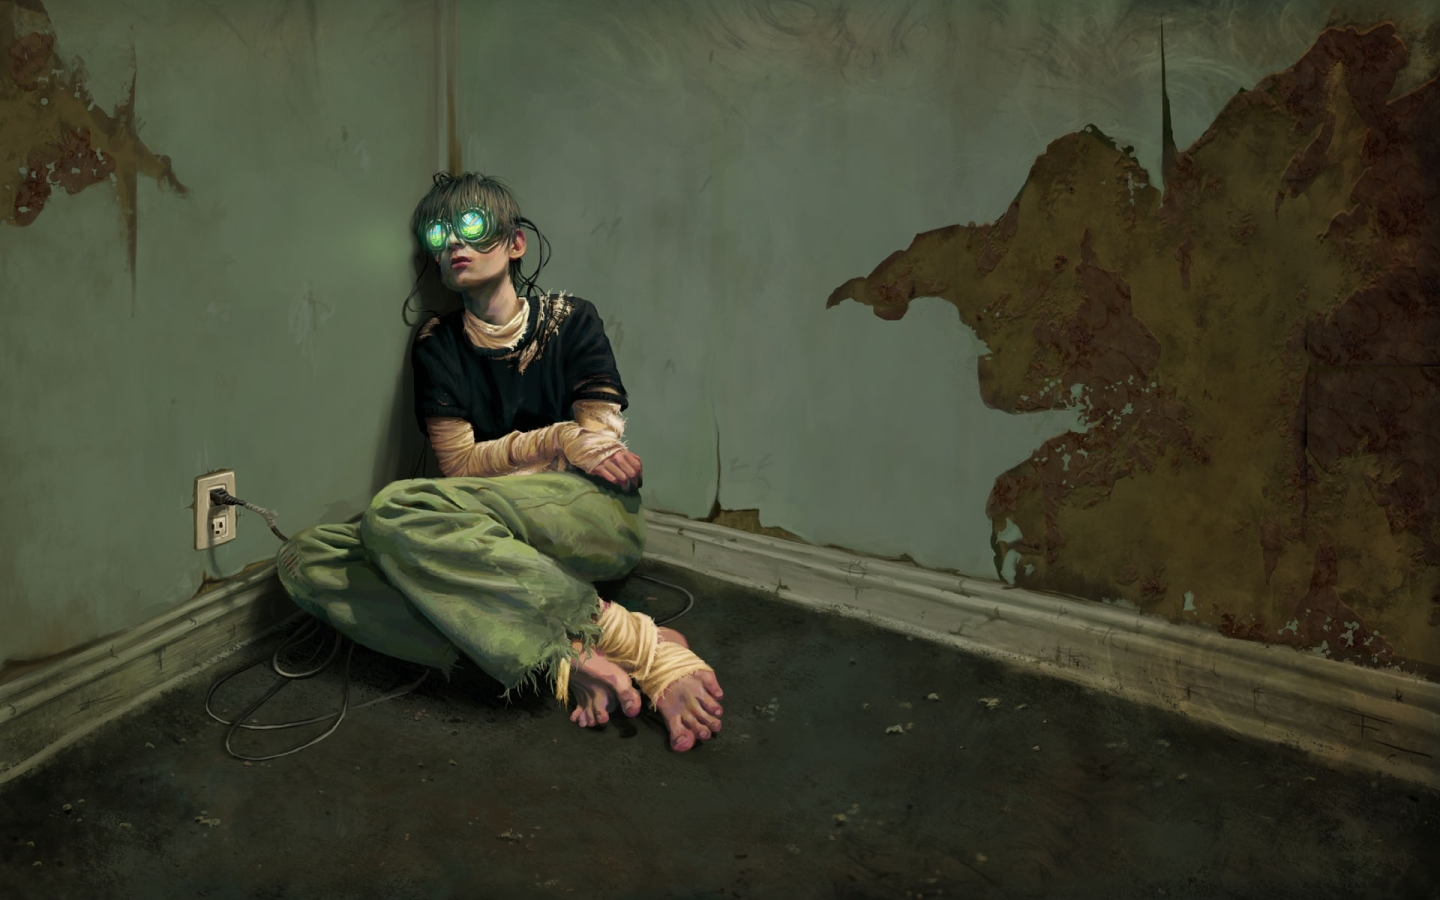 Dark Science Fiction - Immersive Virtual Reality Junkie - image source unknown